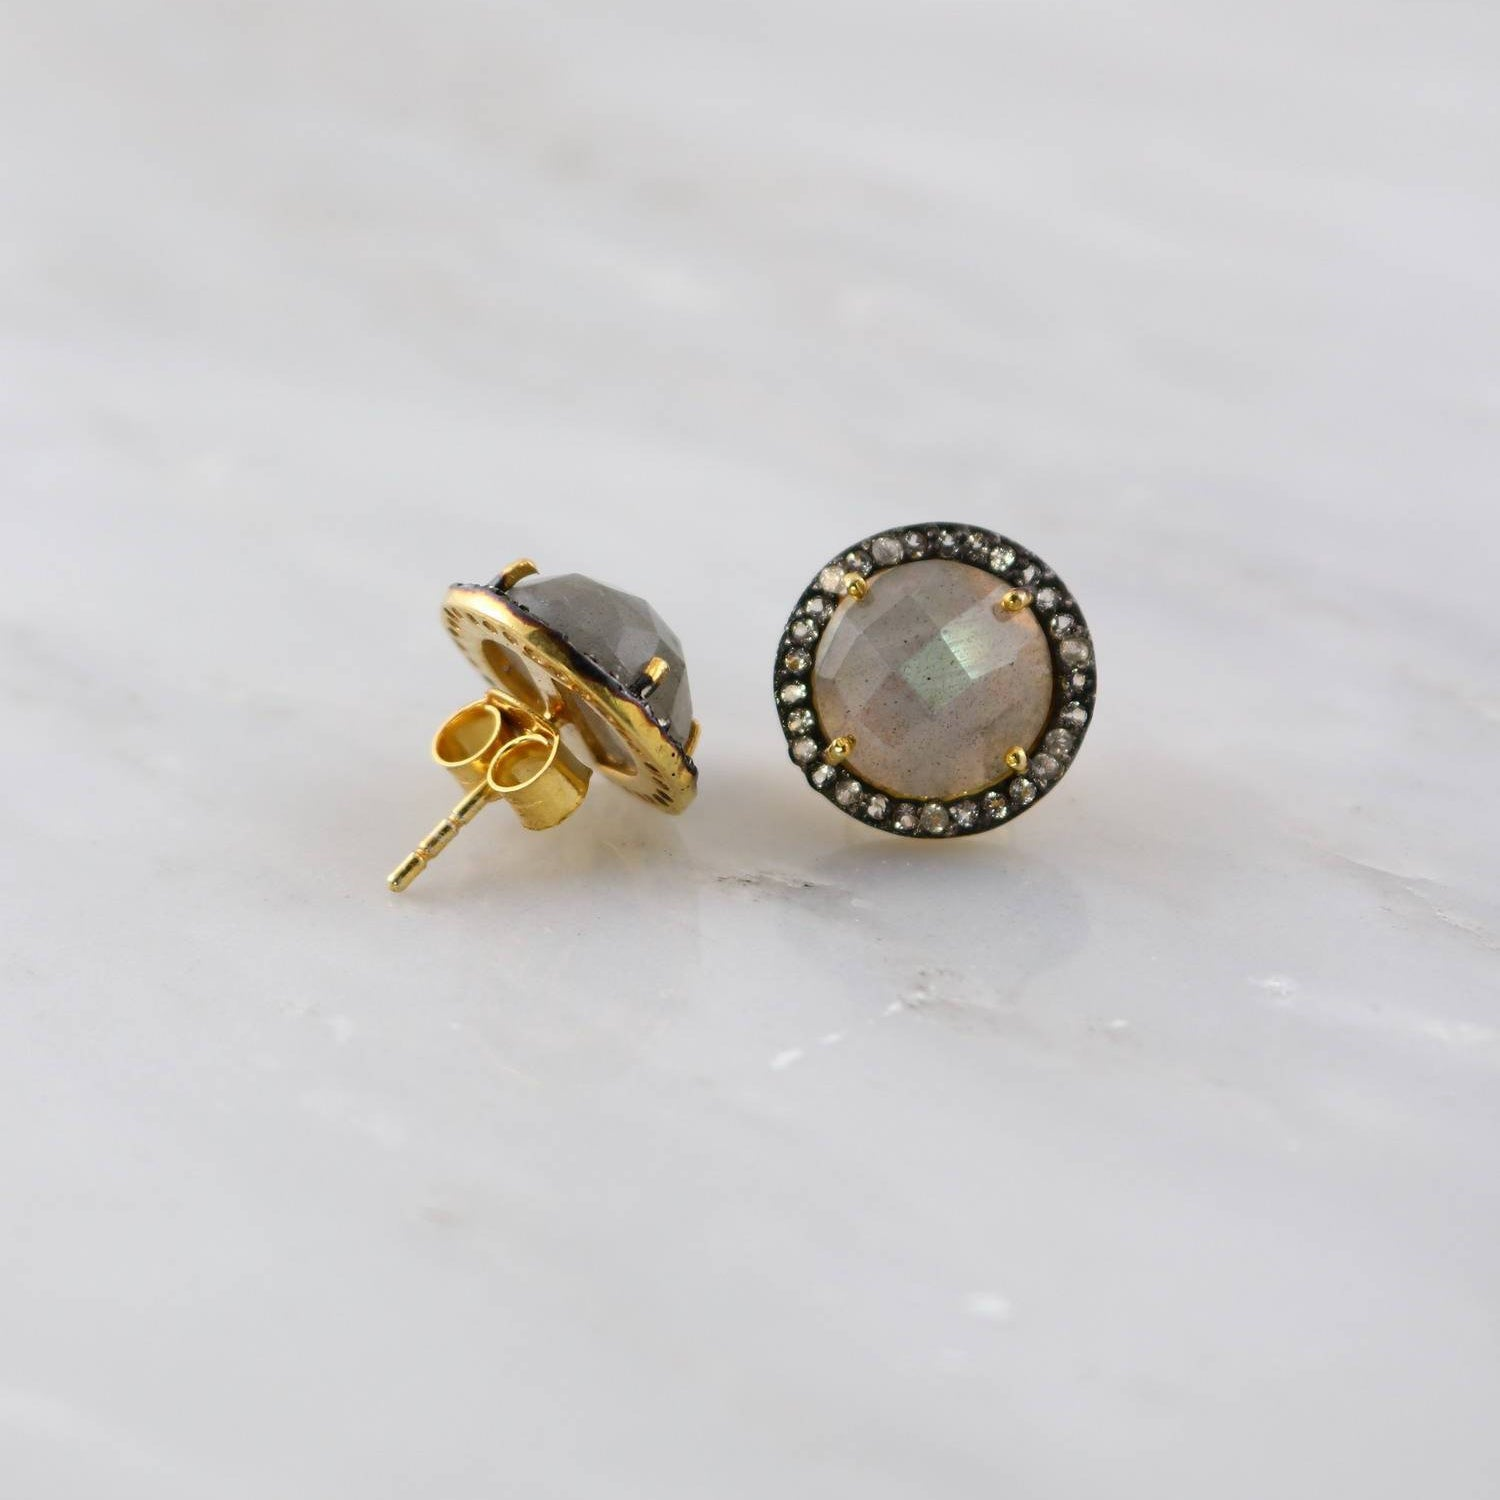 Gemstone Post Studs, Labradorite Studs, Bezel set Studs, Circle Gemstone Studs, Simple Studs, Bridesmaid Earring, Stud Earring, Gift for mom